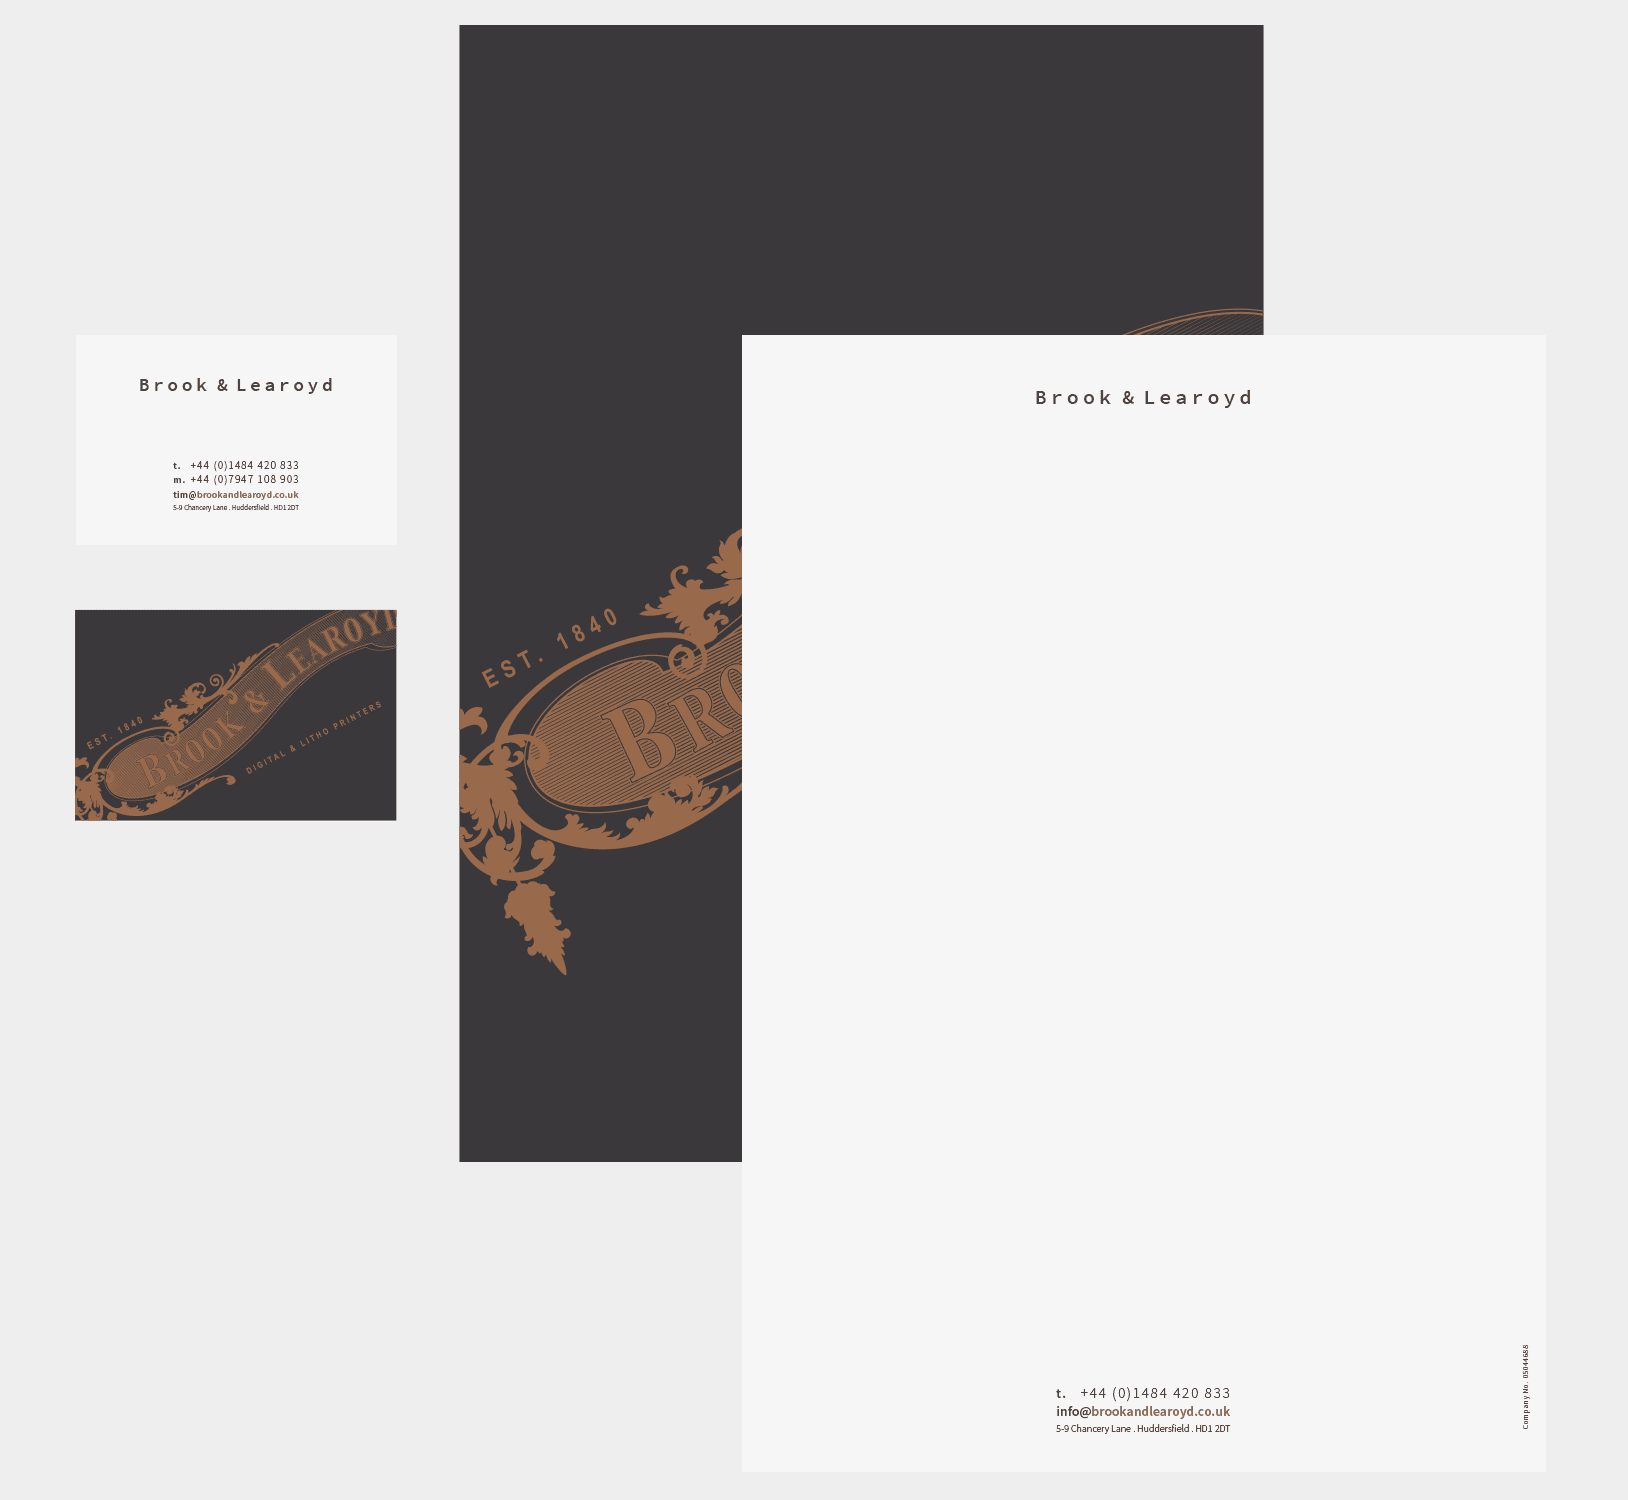 Mike-Garland-BrookandLearoyd-Letterhead-Stationery2